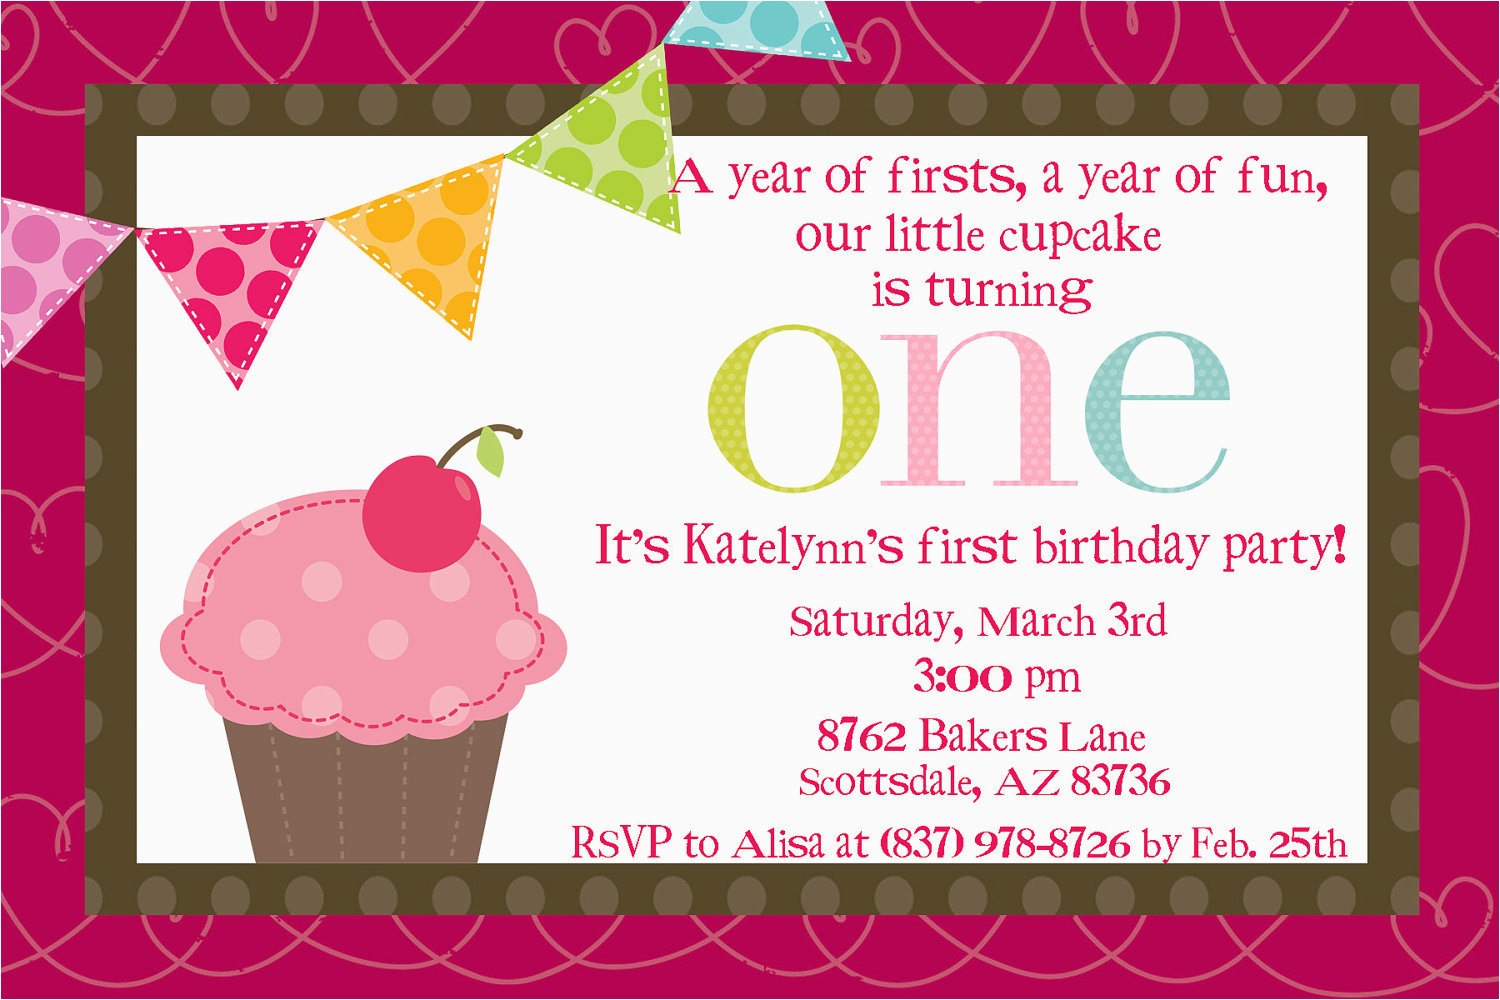 E Invite For Birthday Email Invitations Free Templates Egreeting Ecards